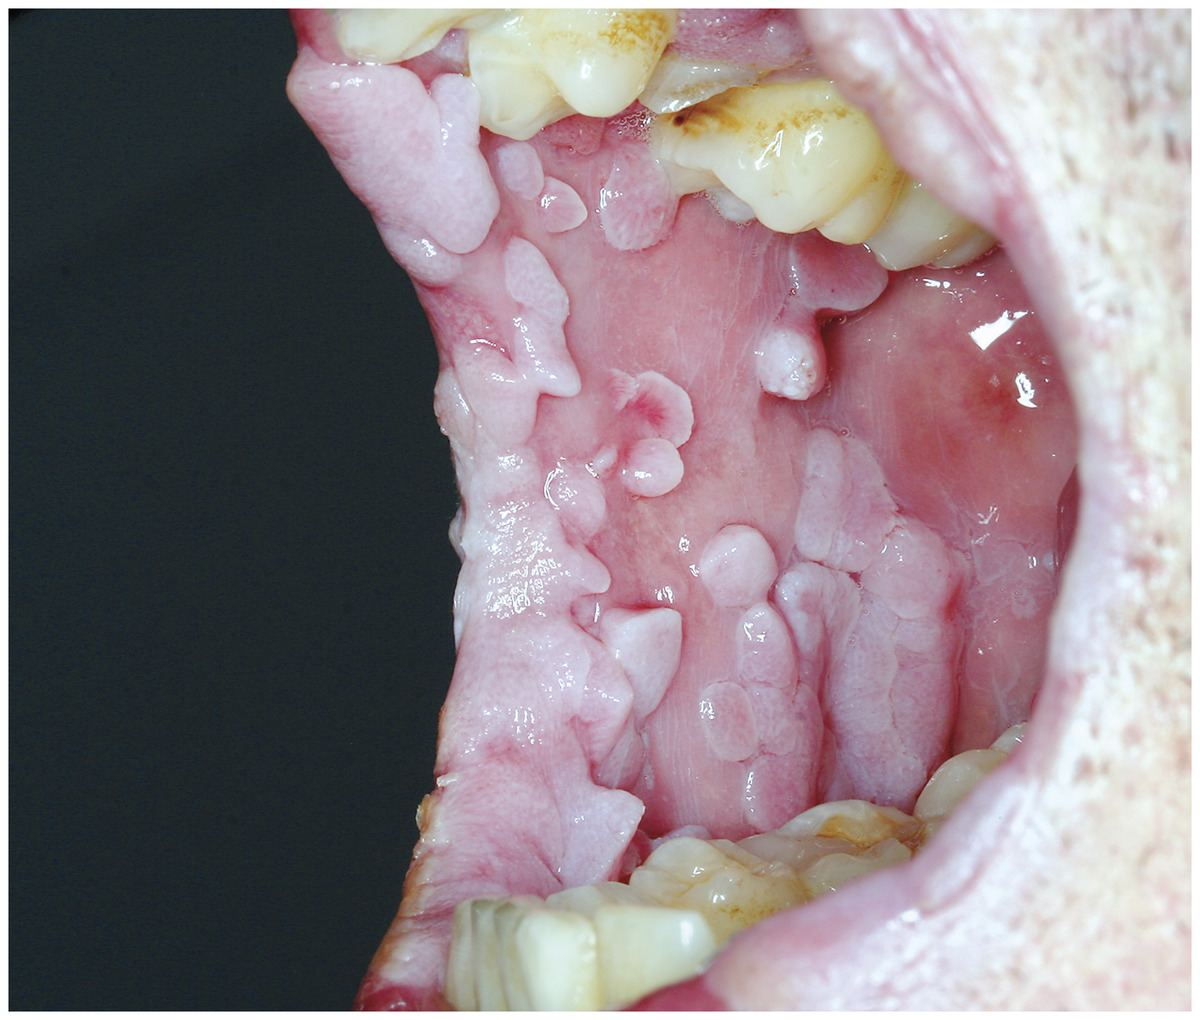 hpv mouth throat papilloma a cellule squamose